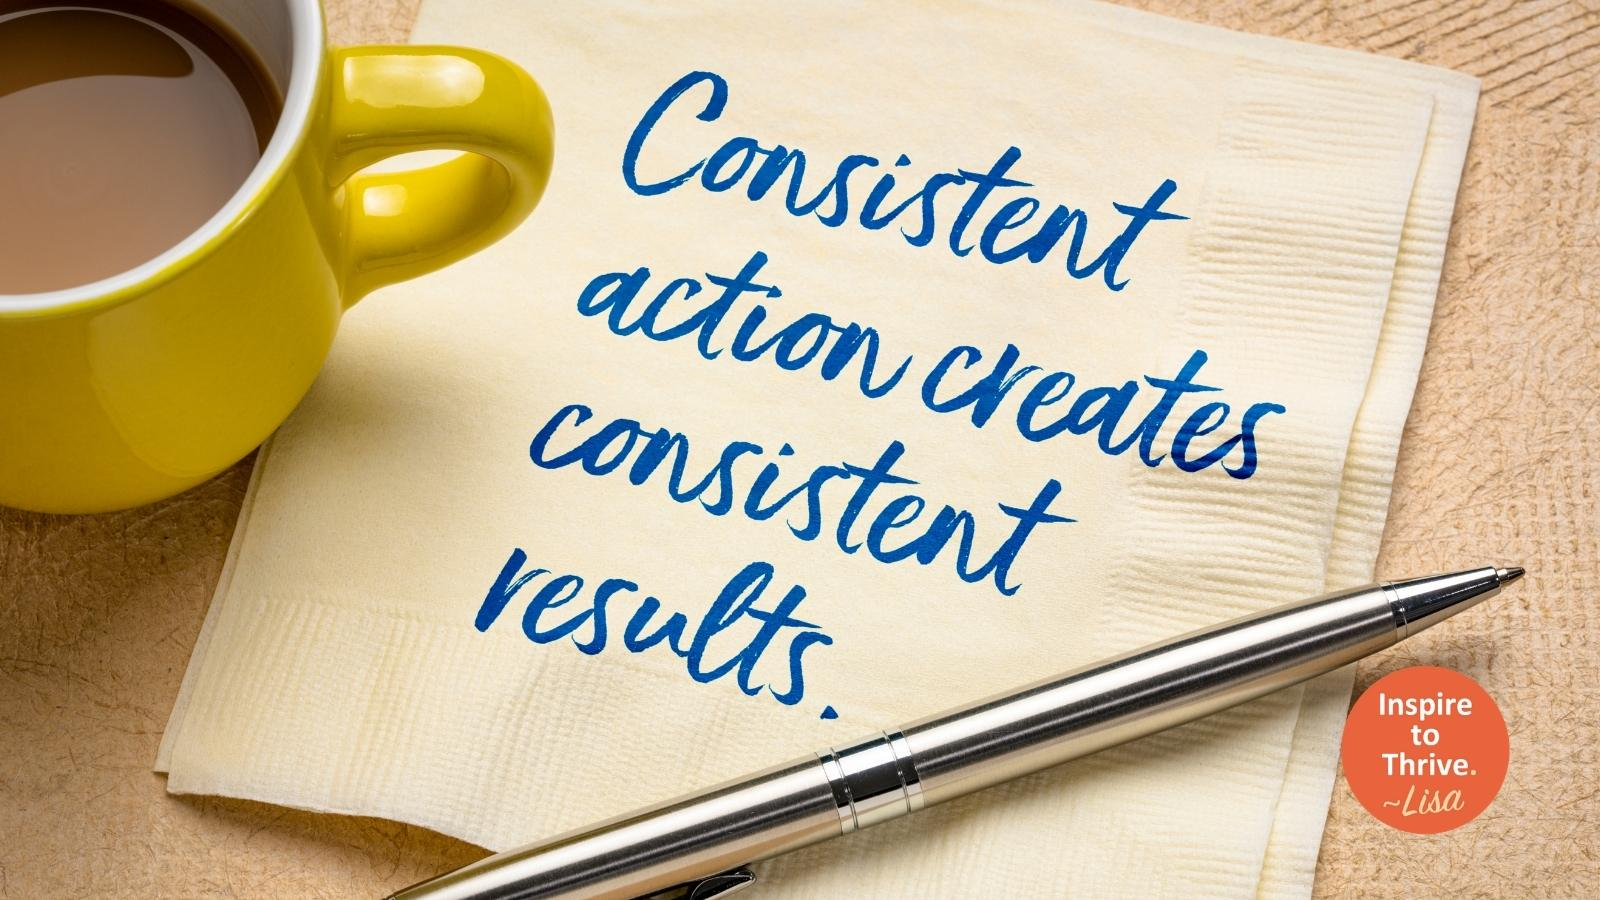 consistency in marketing your small business